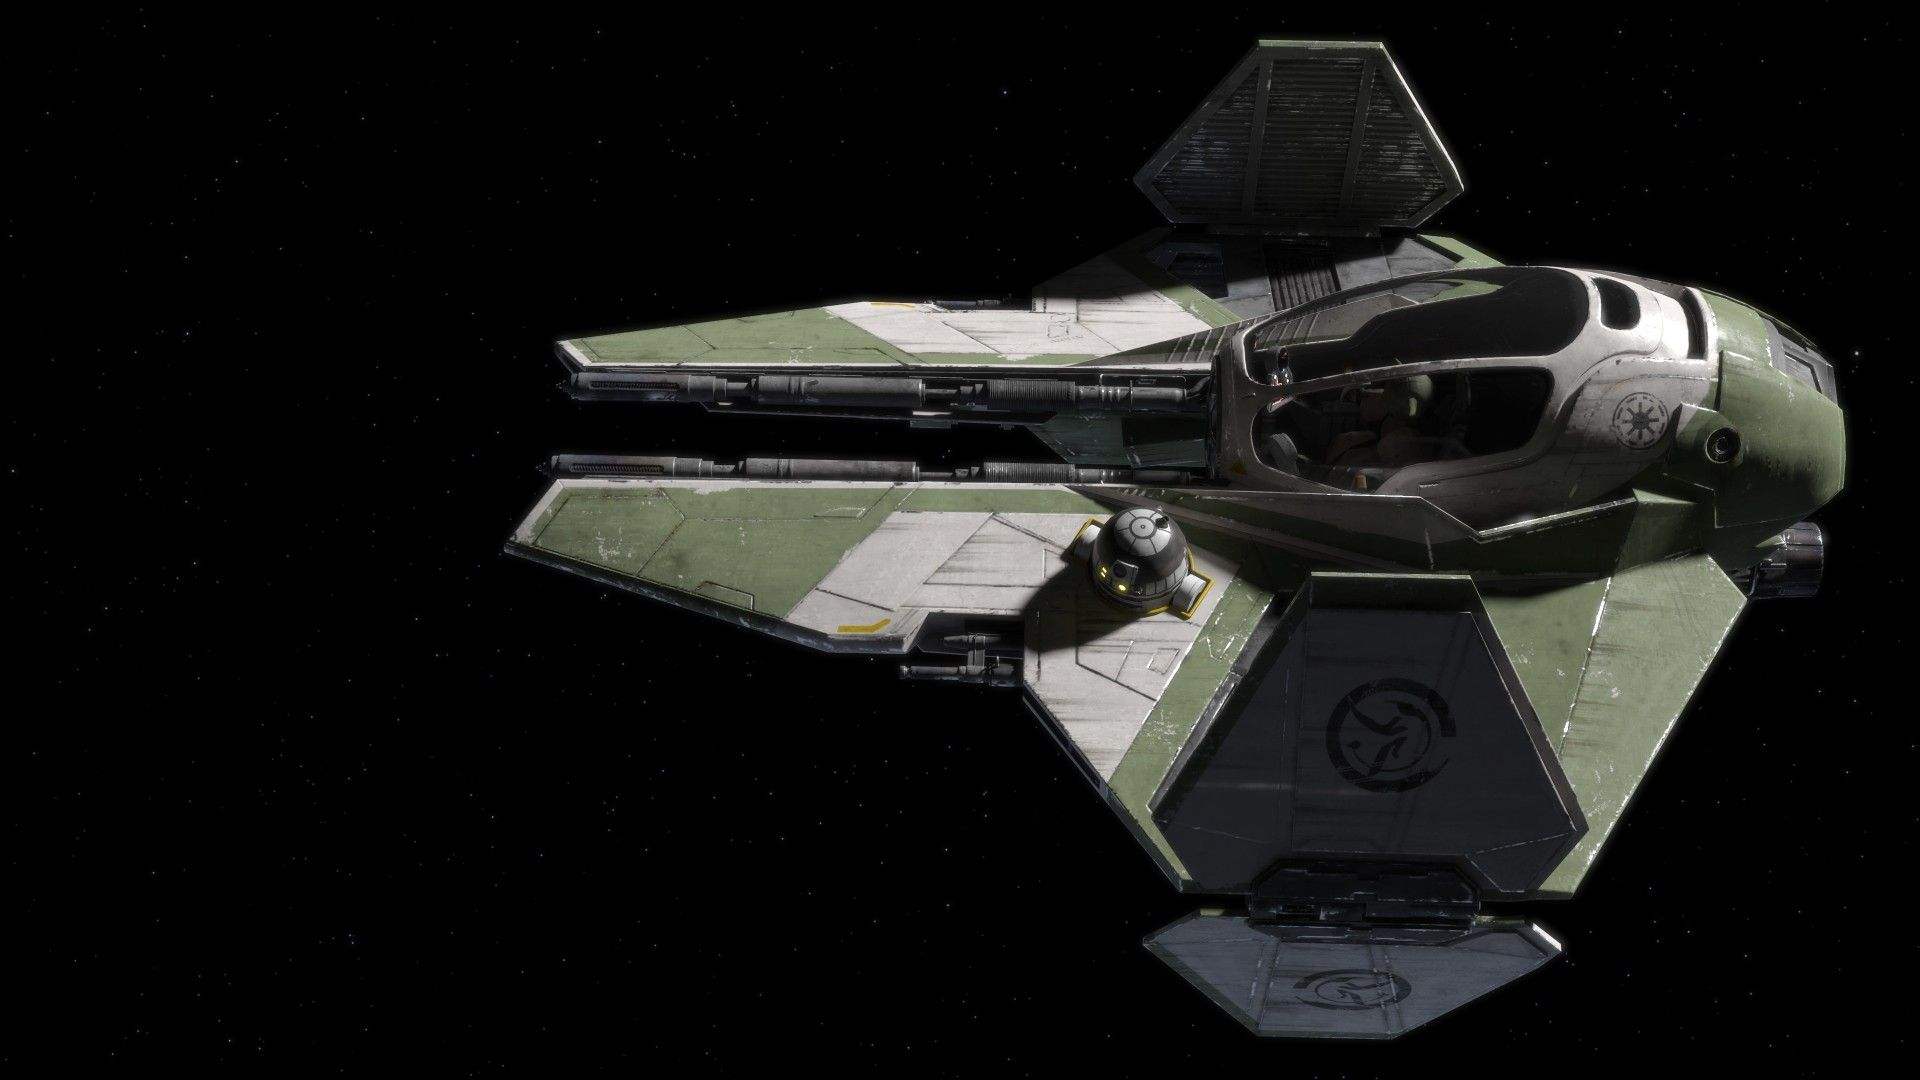 star wars starwars eta 2 actis jedi interceptor yoda 3d rendered